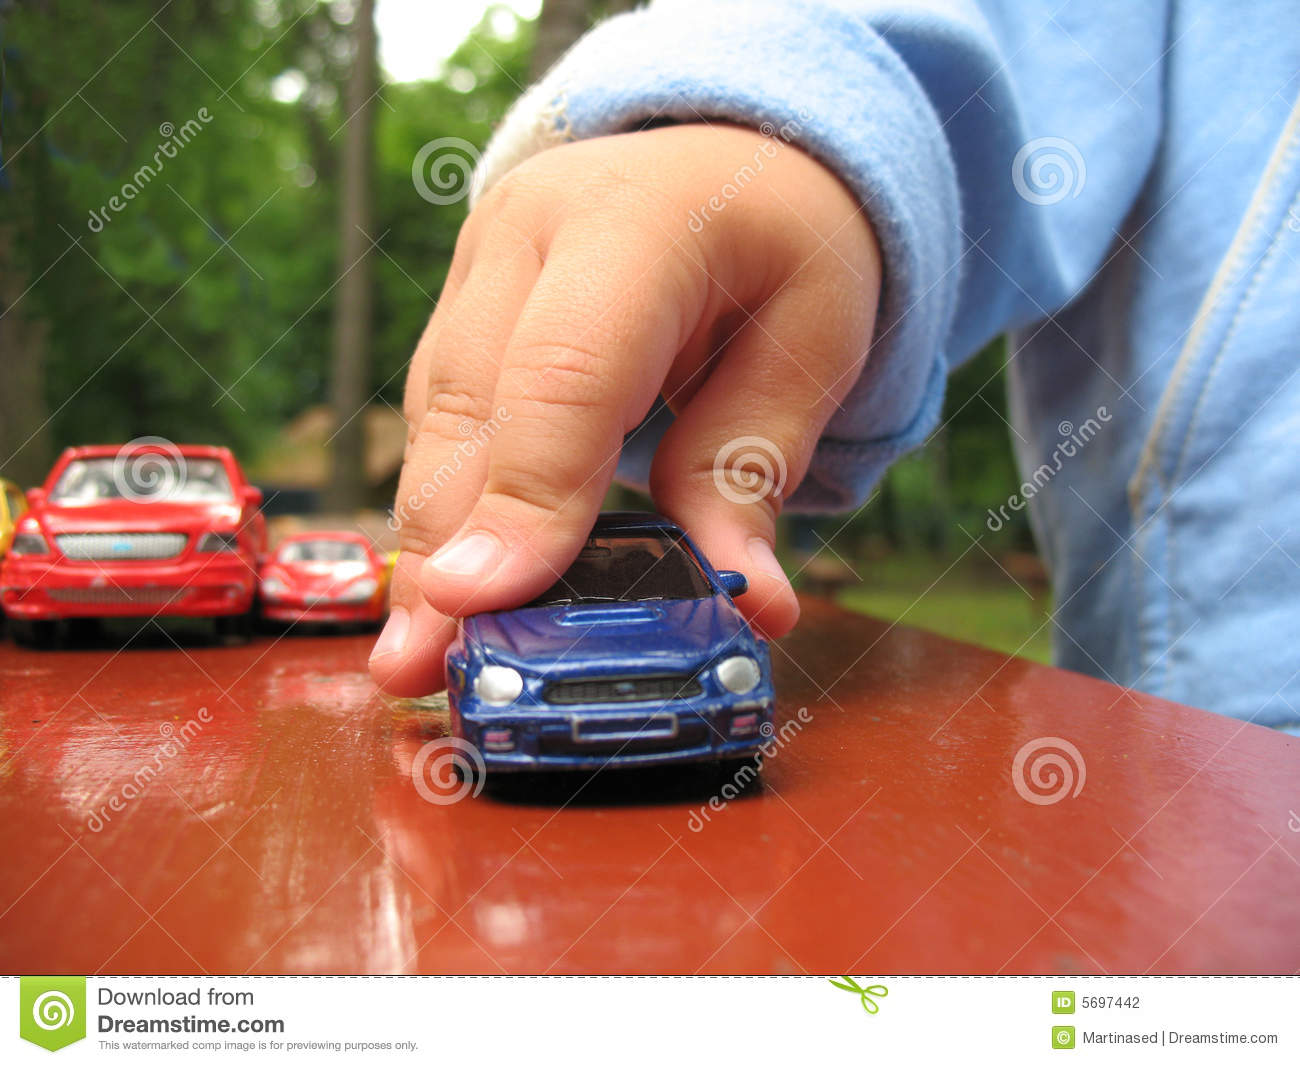 Hunting Toys For Little Boys : Little boy play with toy car stock photography image